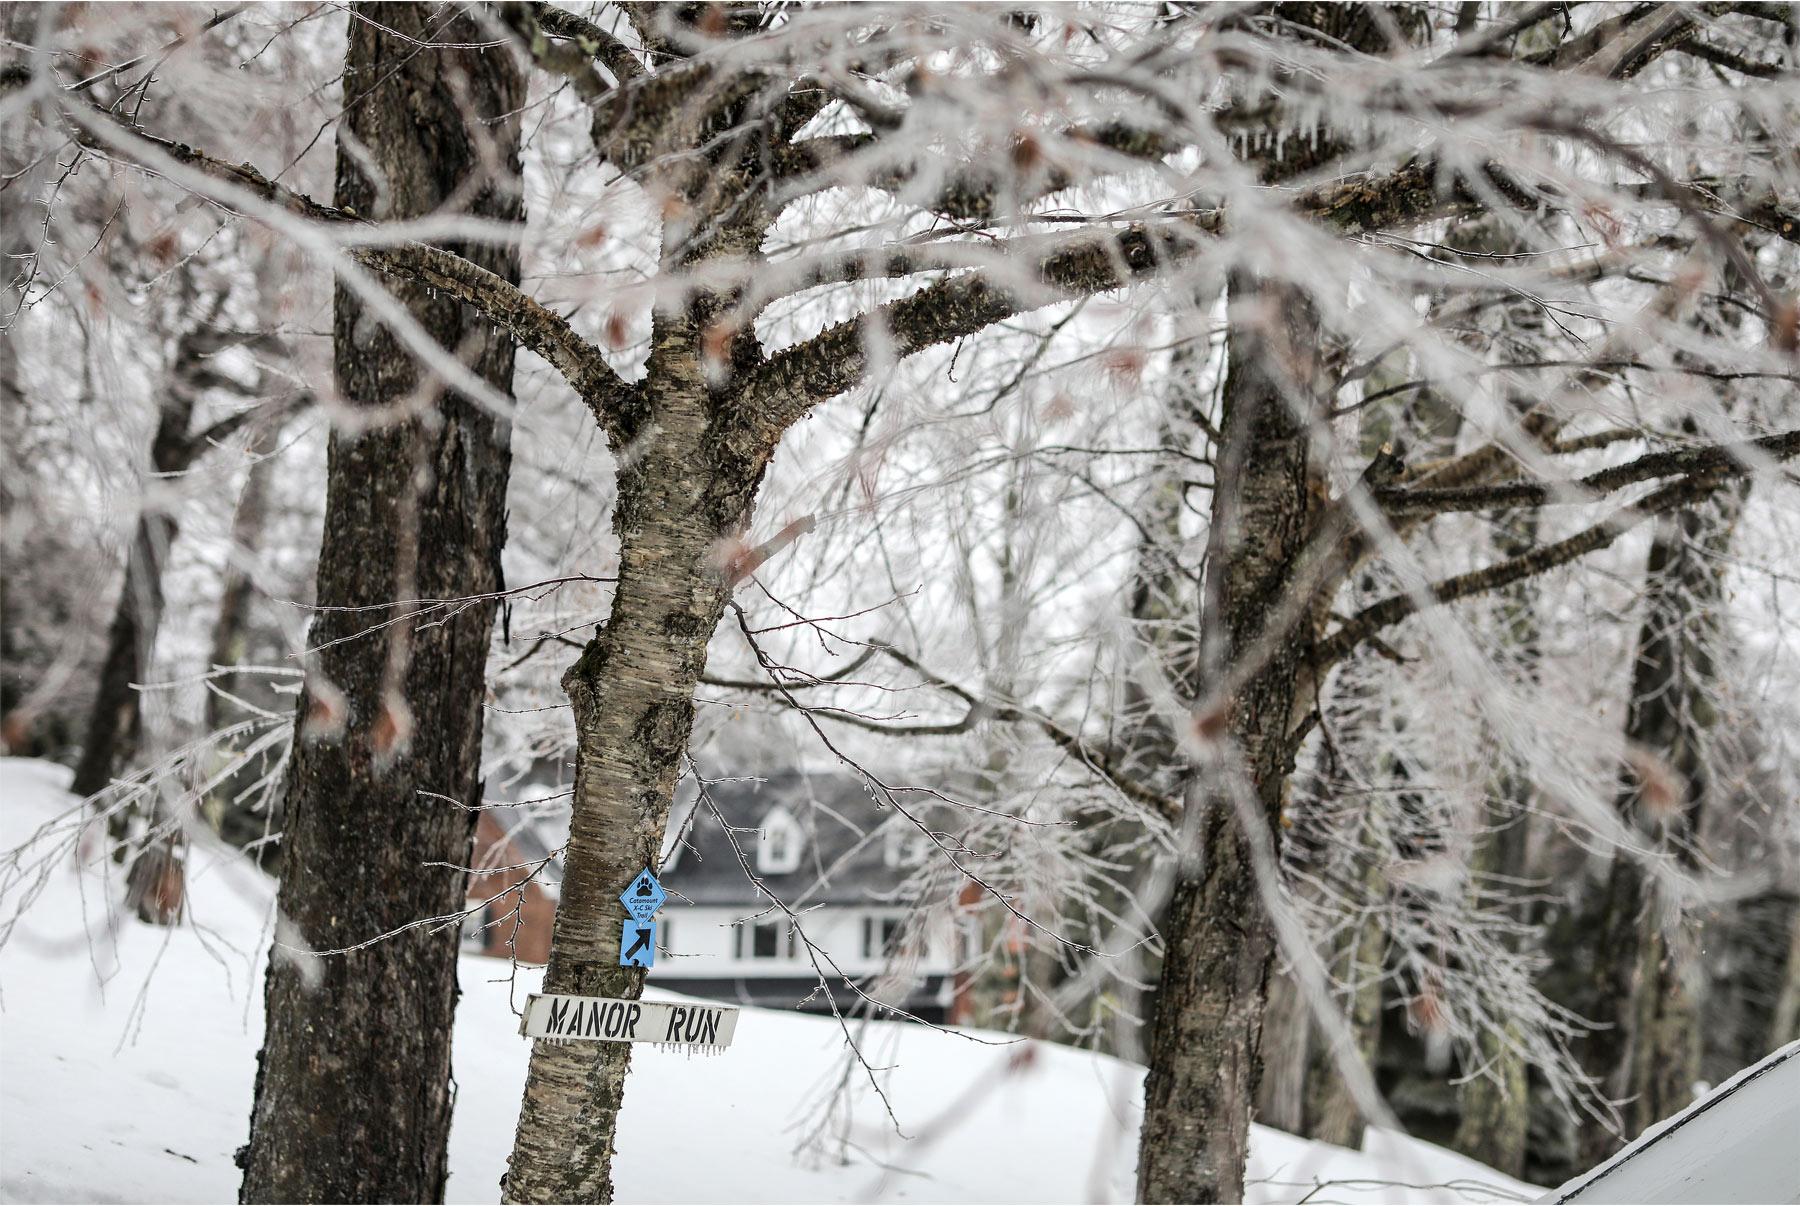 10-Stowe-Vermont-by-Andrew-Vick-Photography-Edson-Hill-Winter-Lodge-Frozen-Trees.jpg